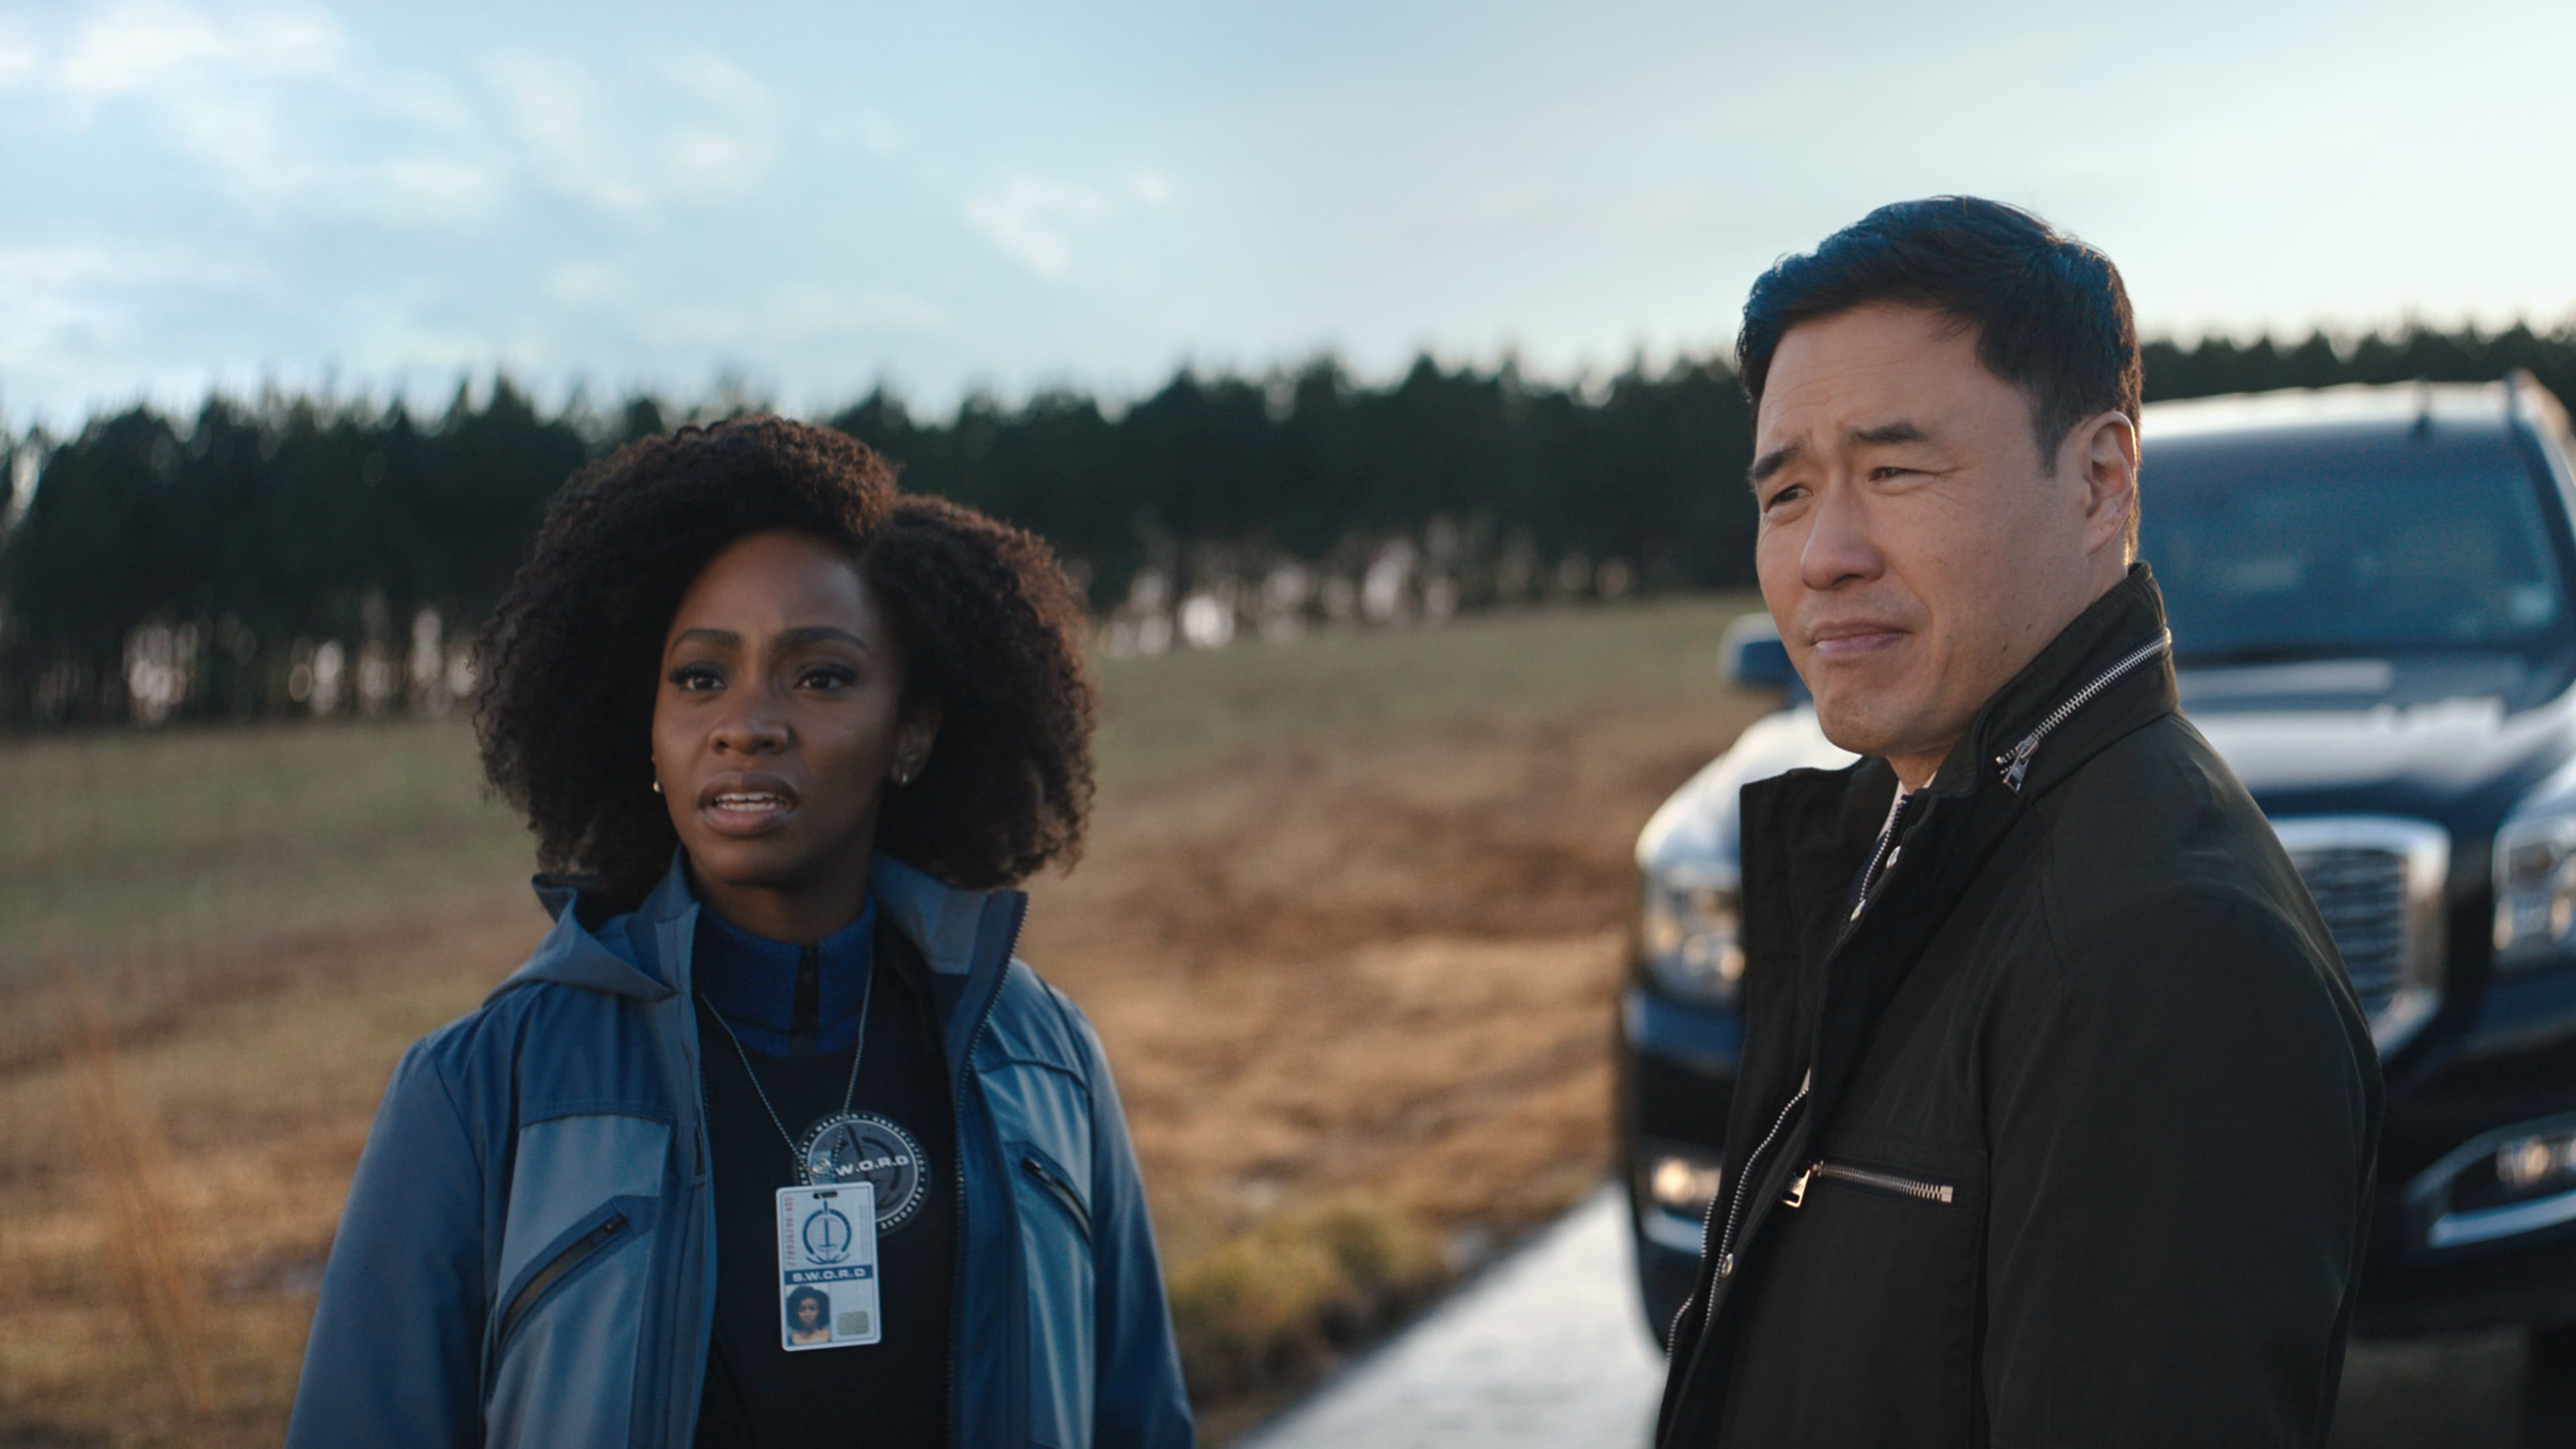 (L-R): Teyonah Parris as Monica Rambeau and Randall Park as Jimmy Woo in Marvel Studios' WANDAVISION exclusively on Disney+. Photo courtesy of Marvel Studios. ©Marvel Studios 2021. All Rights Reserved.